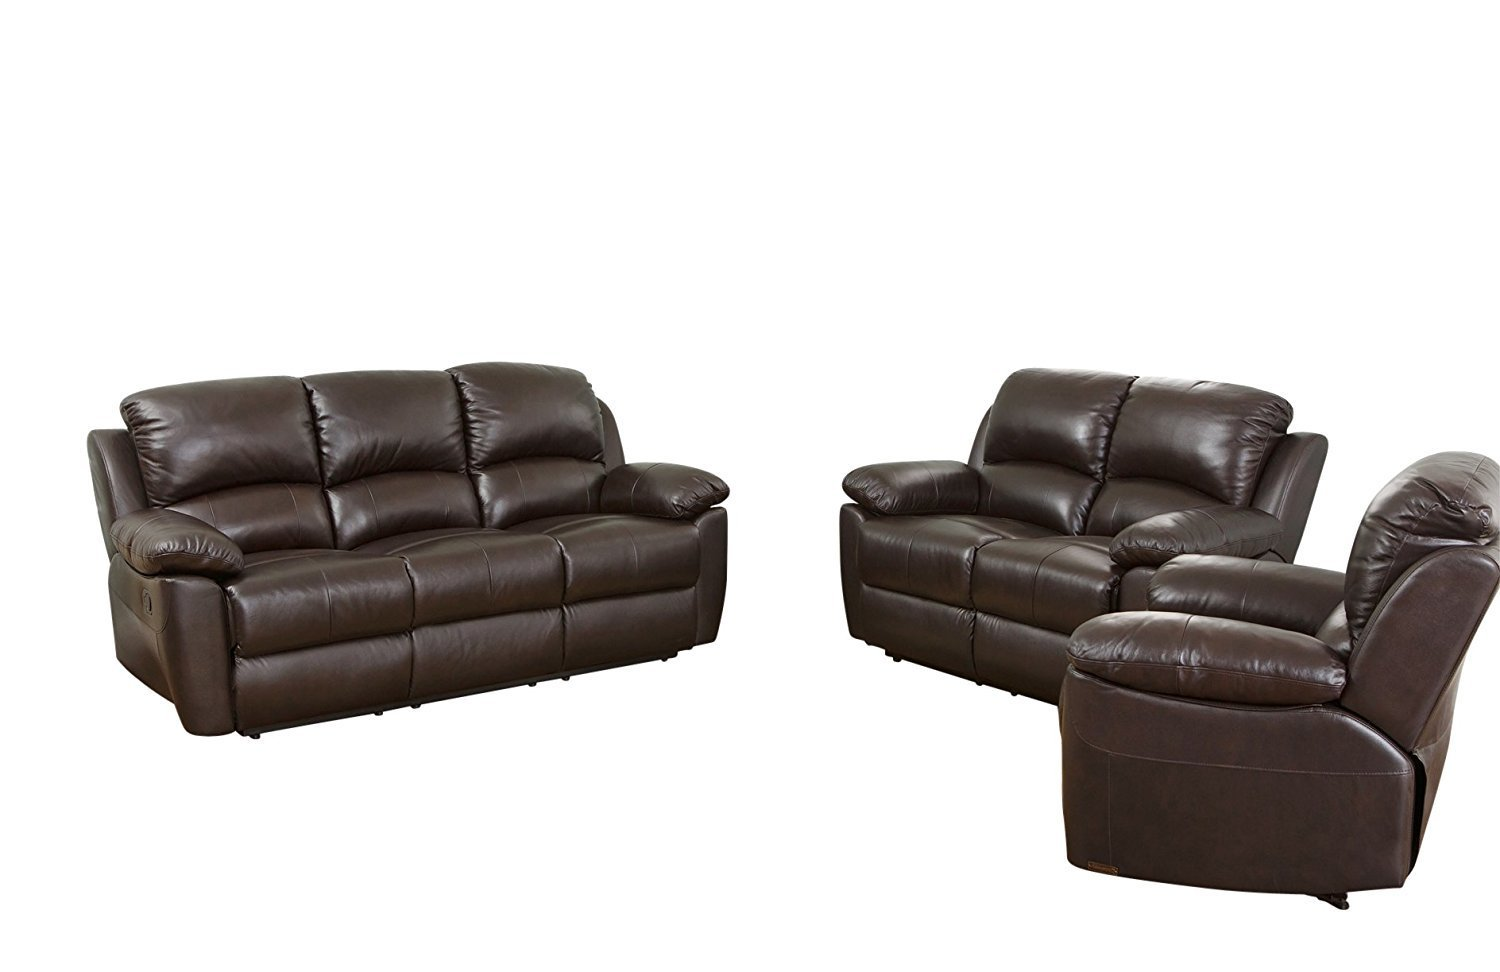 Abbyson Brody Leather Armchair Home Furniture Design